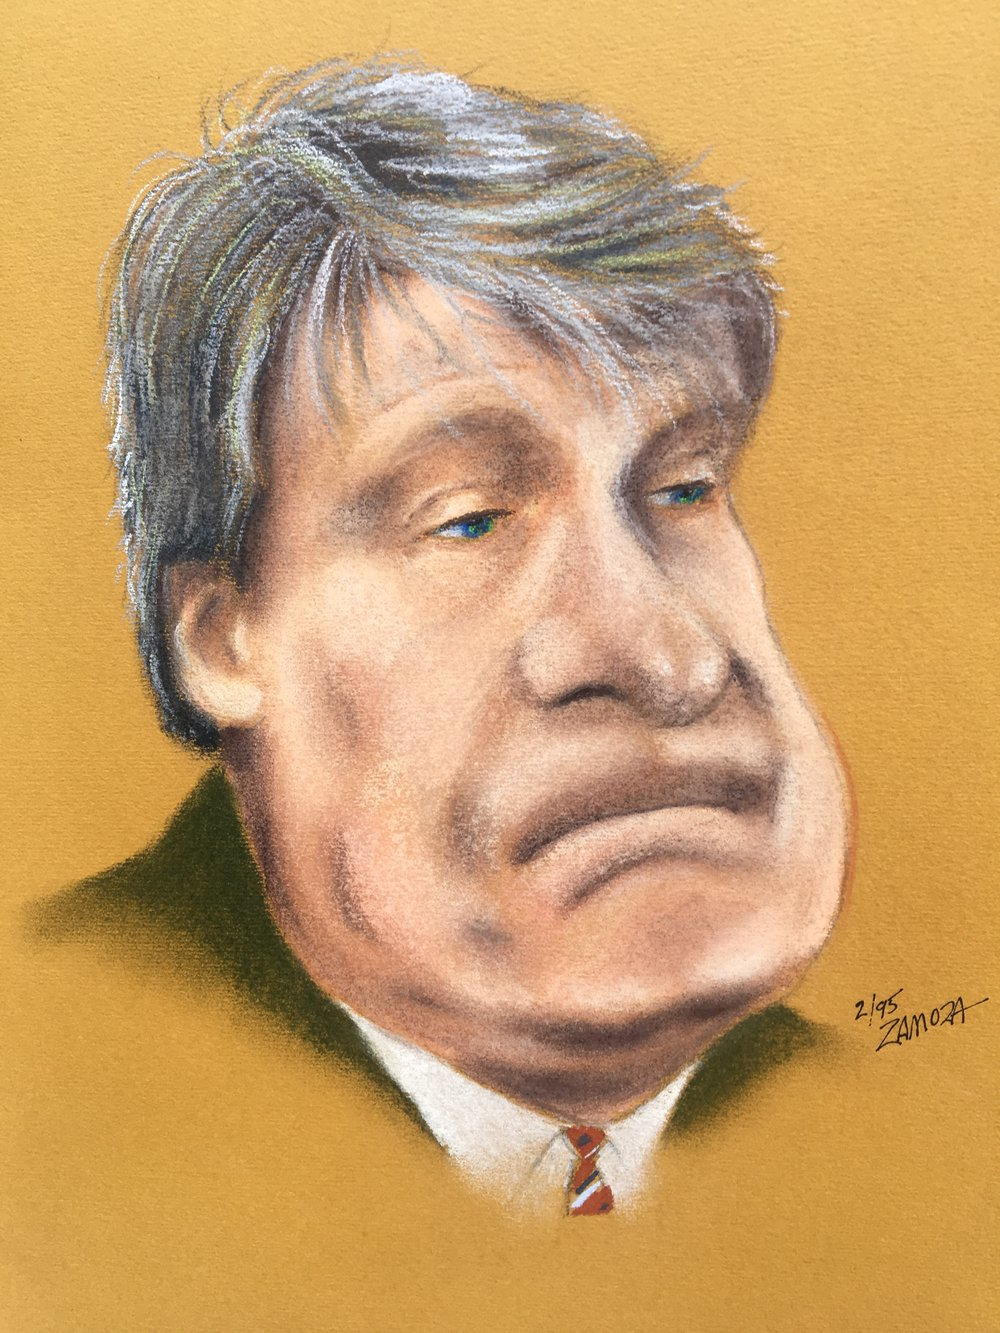 "Zamora, Gil. Caricature of  Don Nelson.  1995. Chalk pastel on colored paper, 12"" x 14"". Private collection."